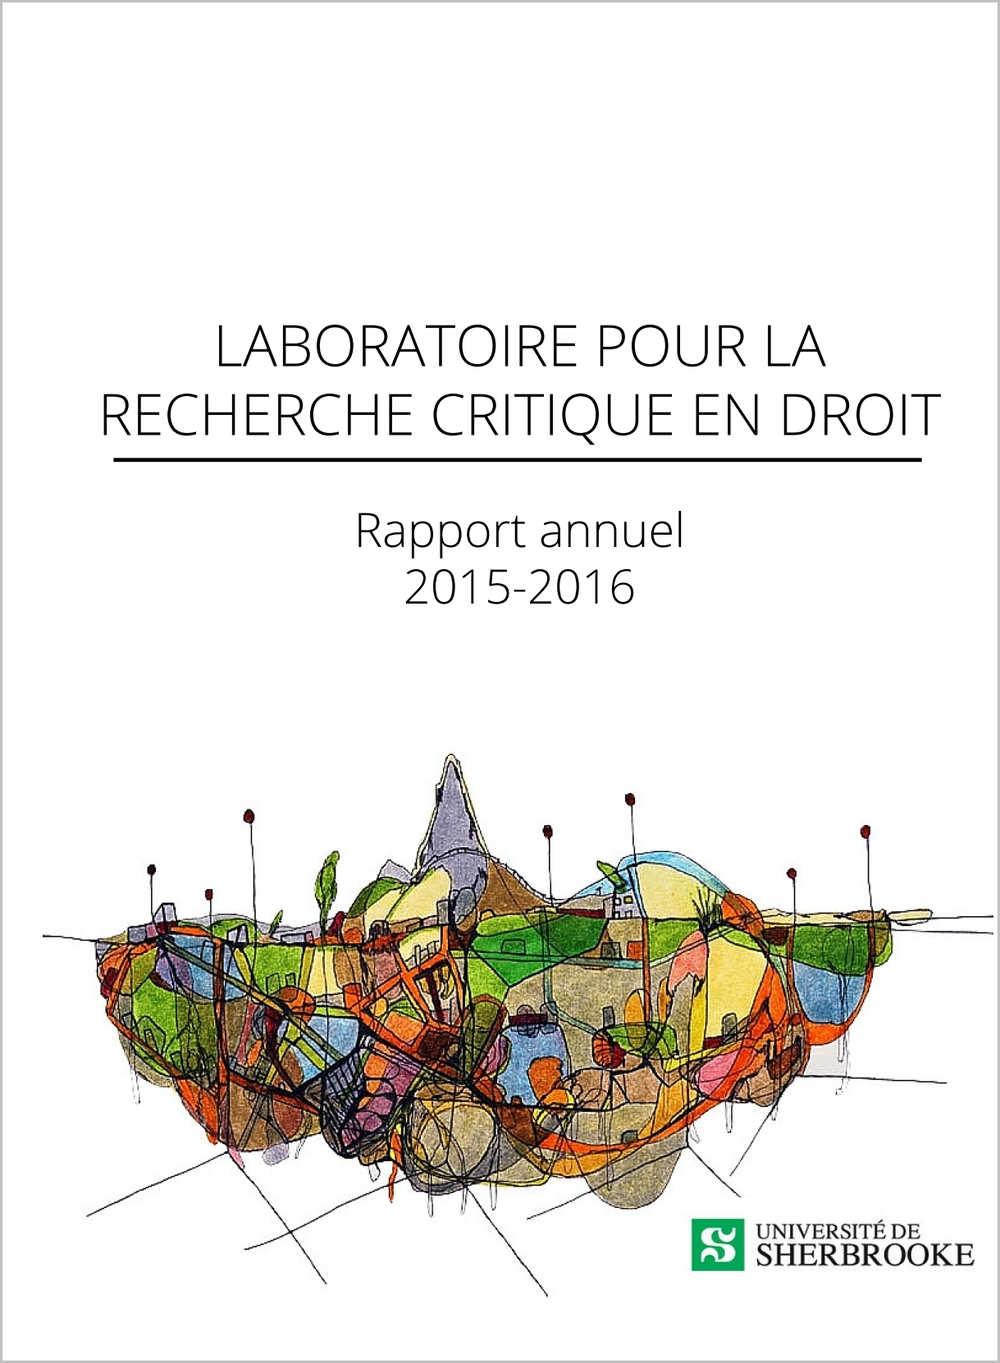 Click here to download our 2015-2016 Annual Report (in French only)